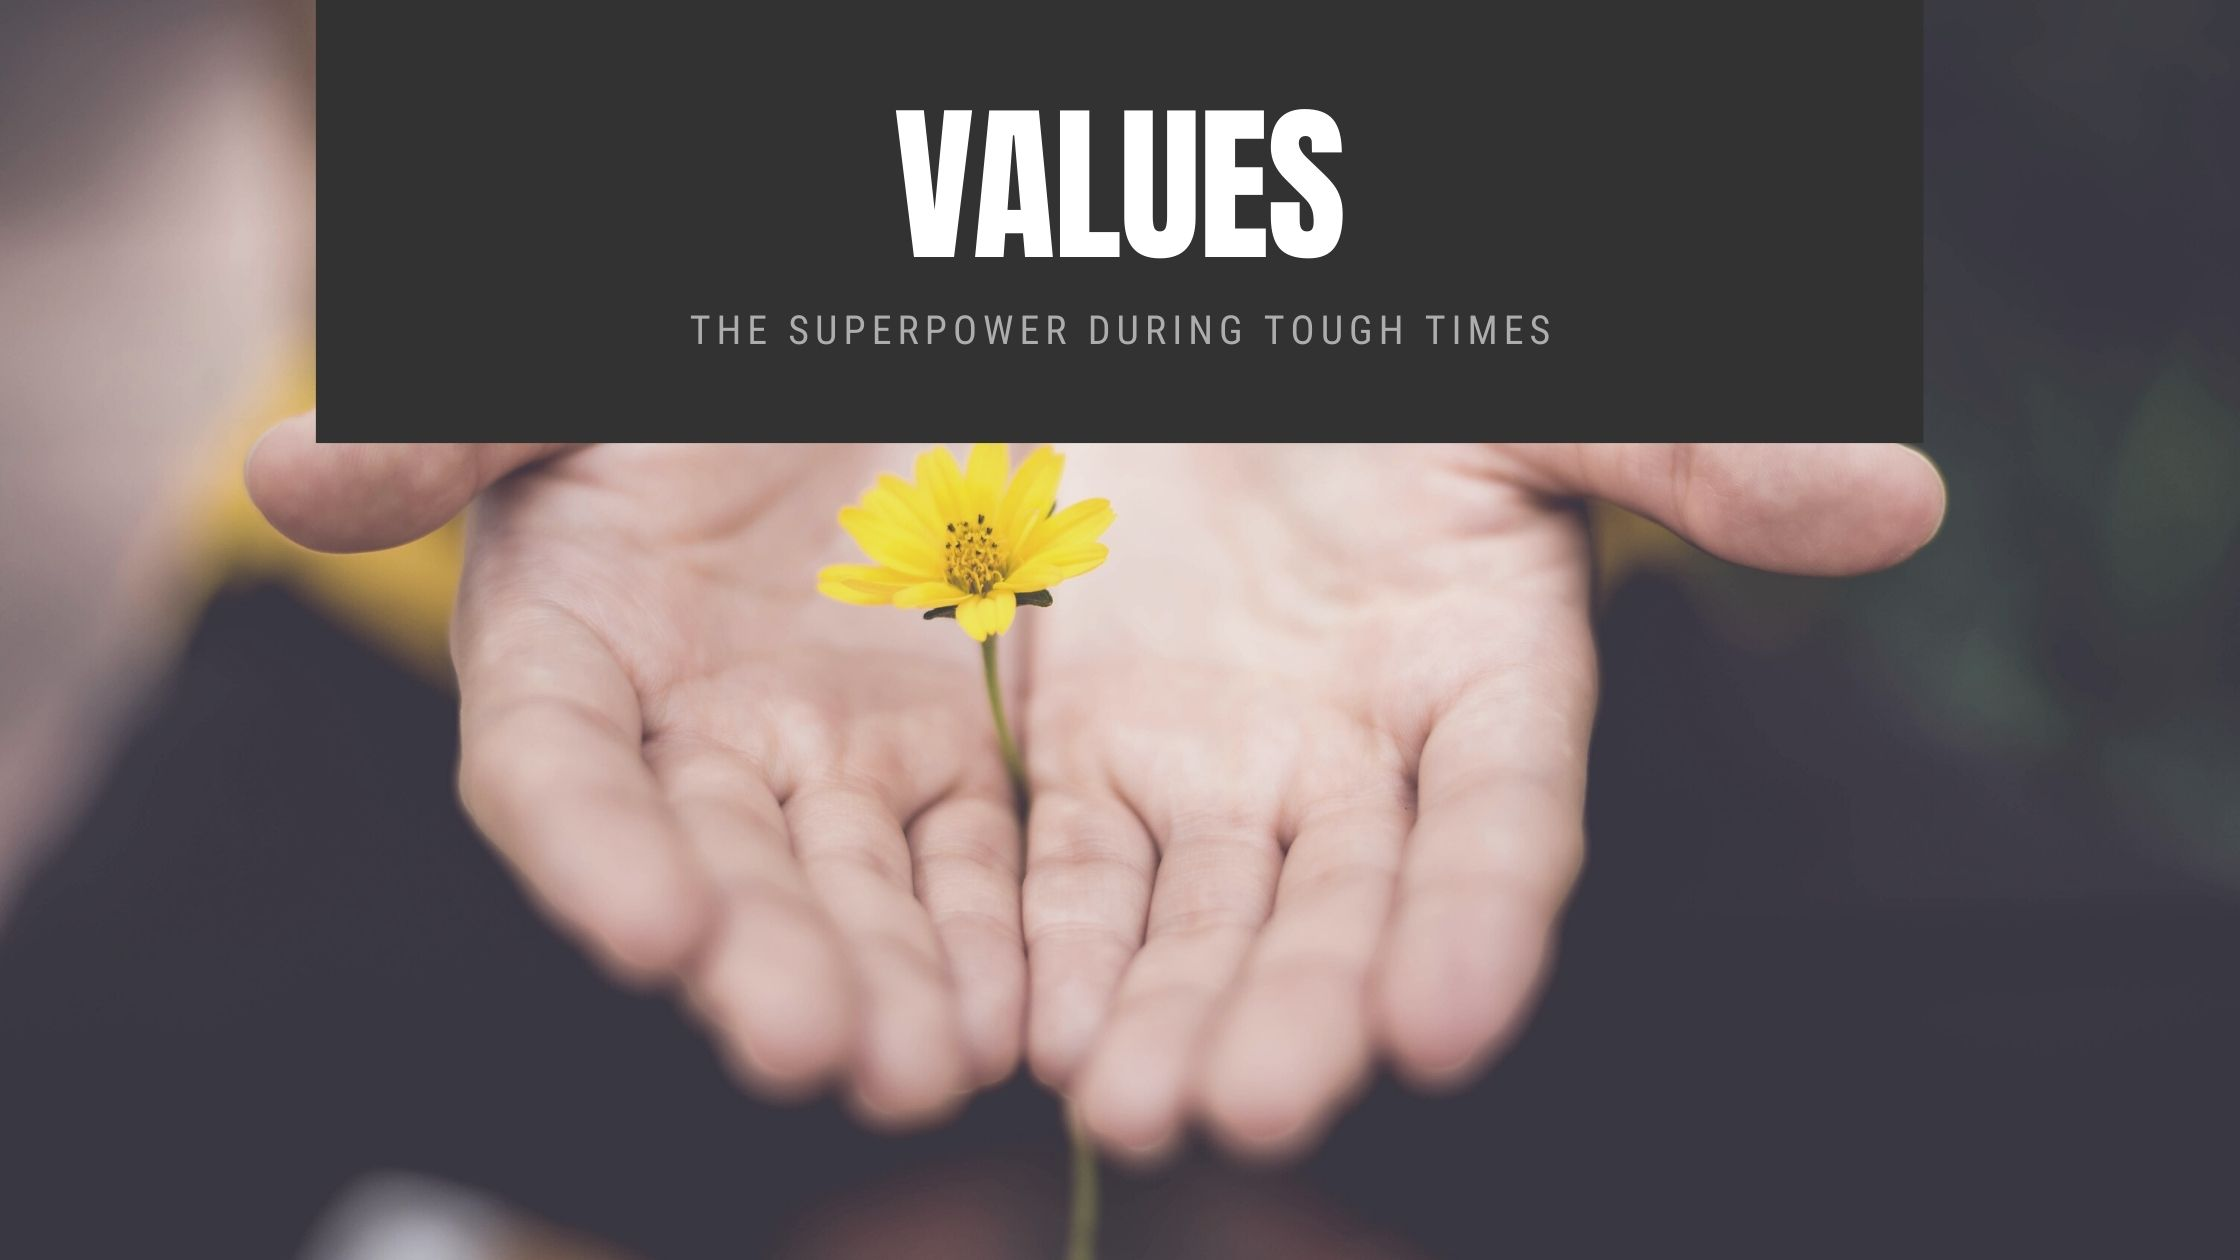 Values the superpower during tough times